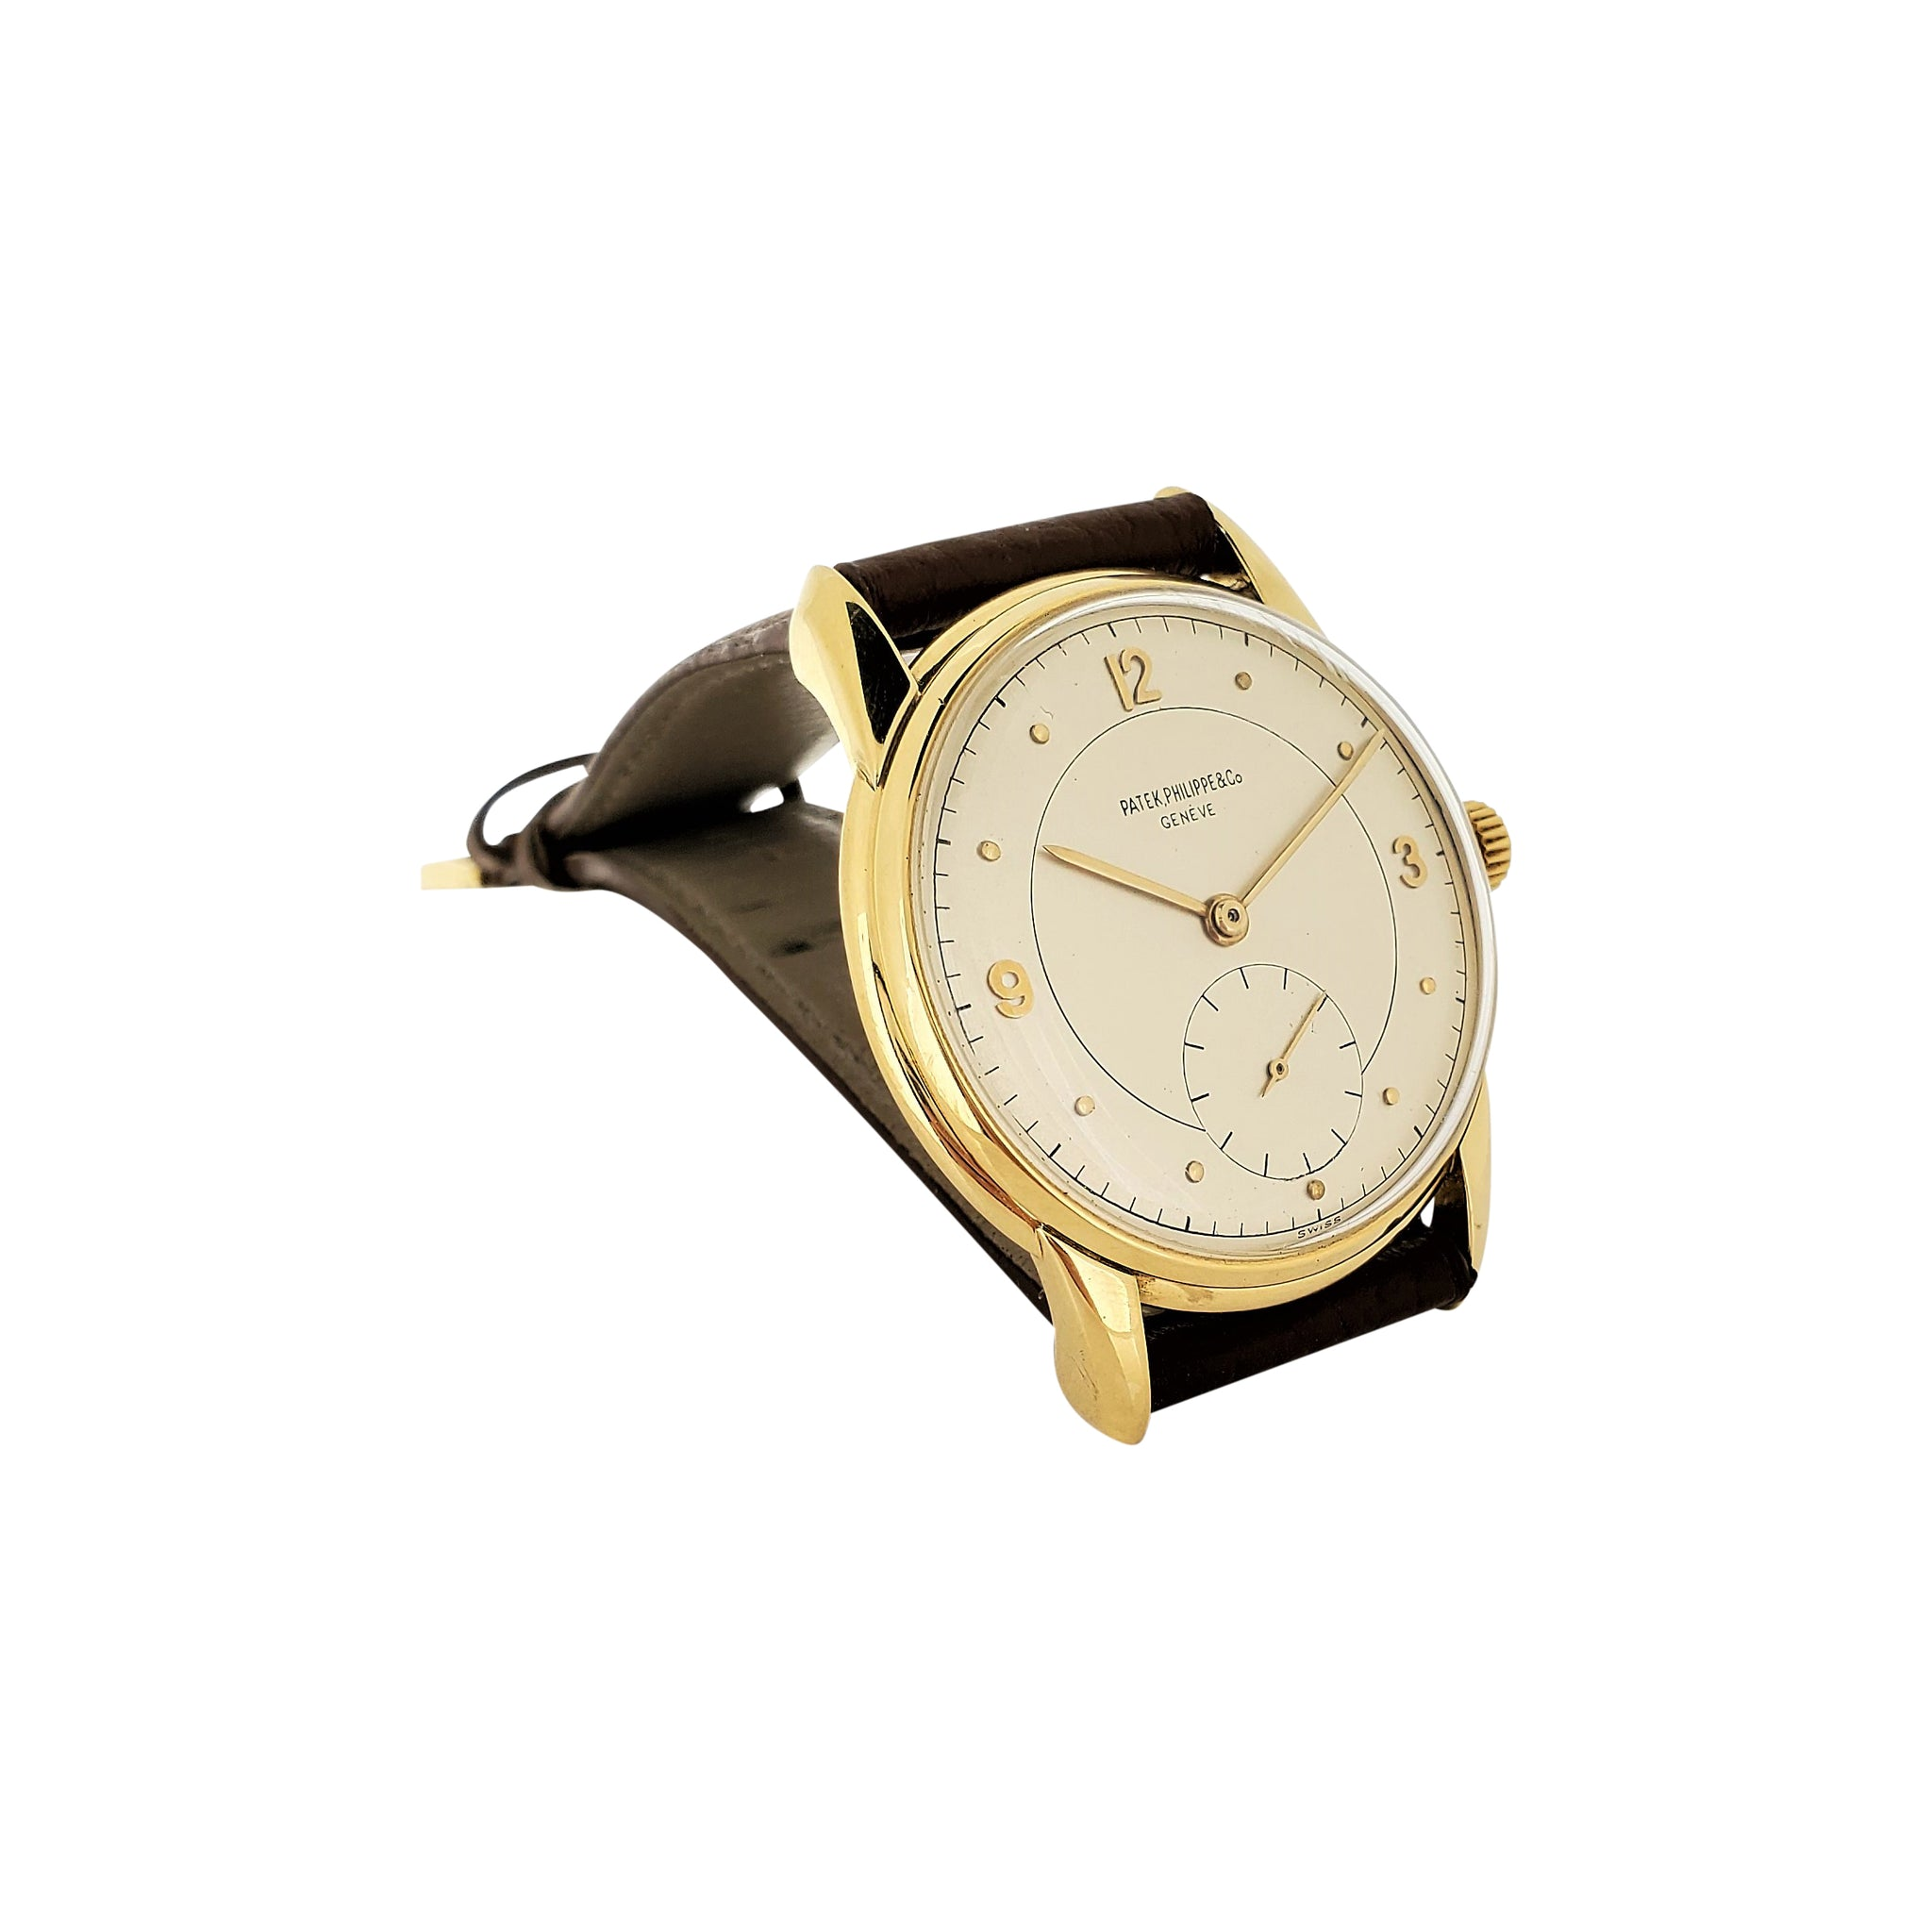 Patek Philippe 1569J Calatrava Watch Circa 1945